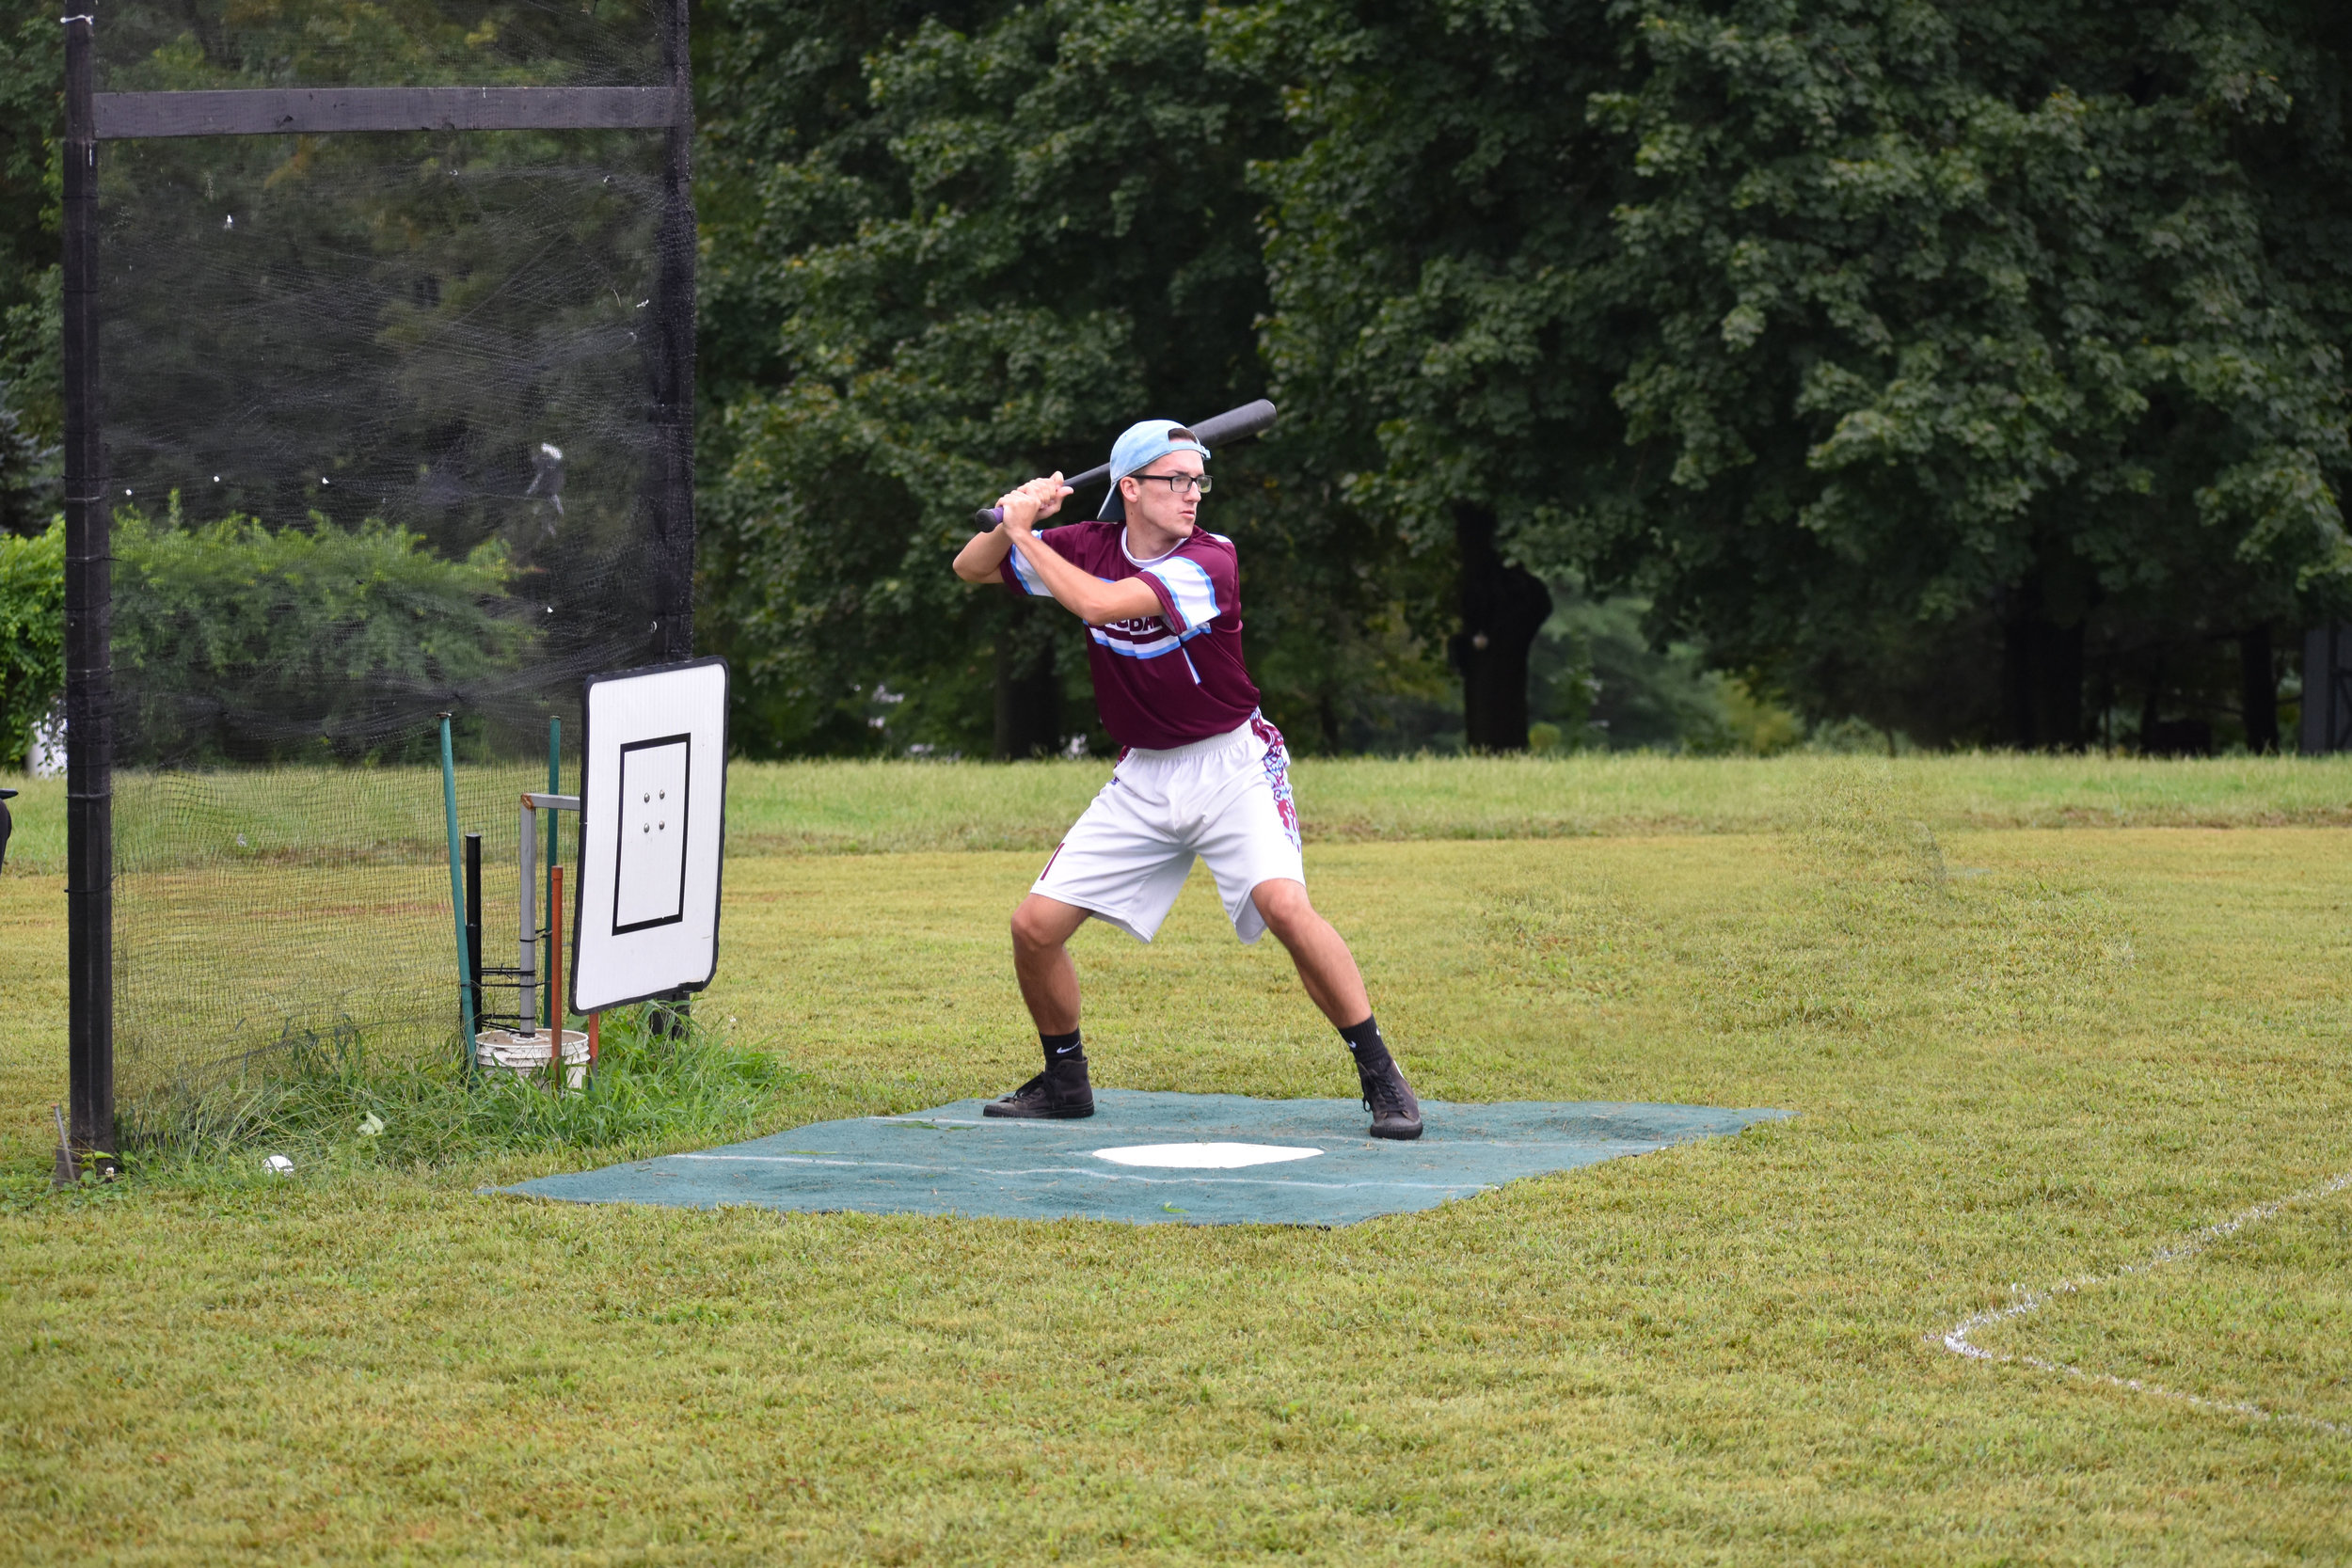 Dylan Harshaw of the Longballs digs in during a semi-final series game.